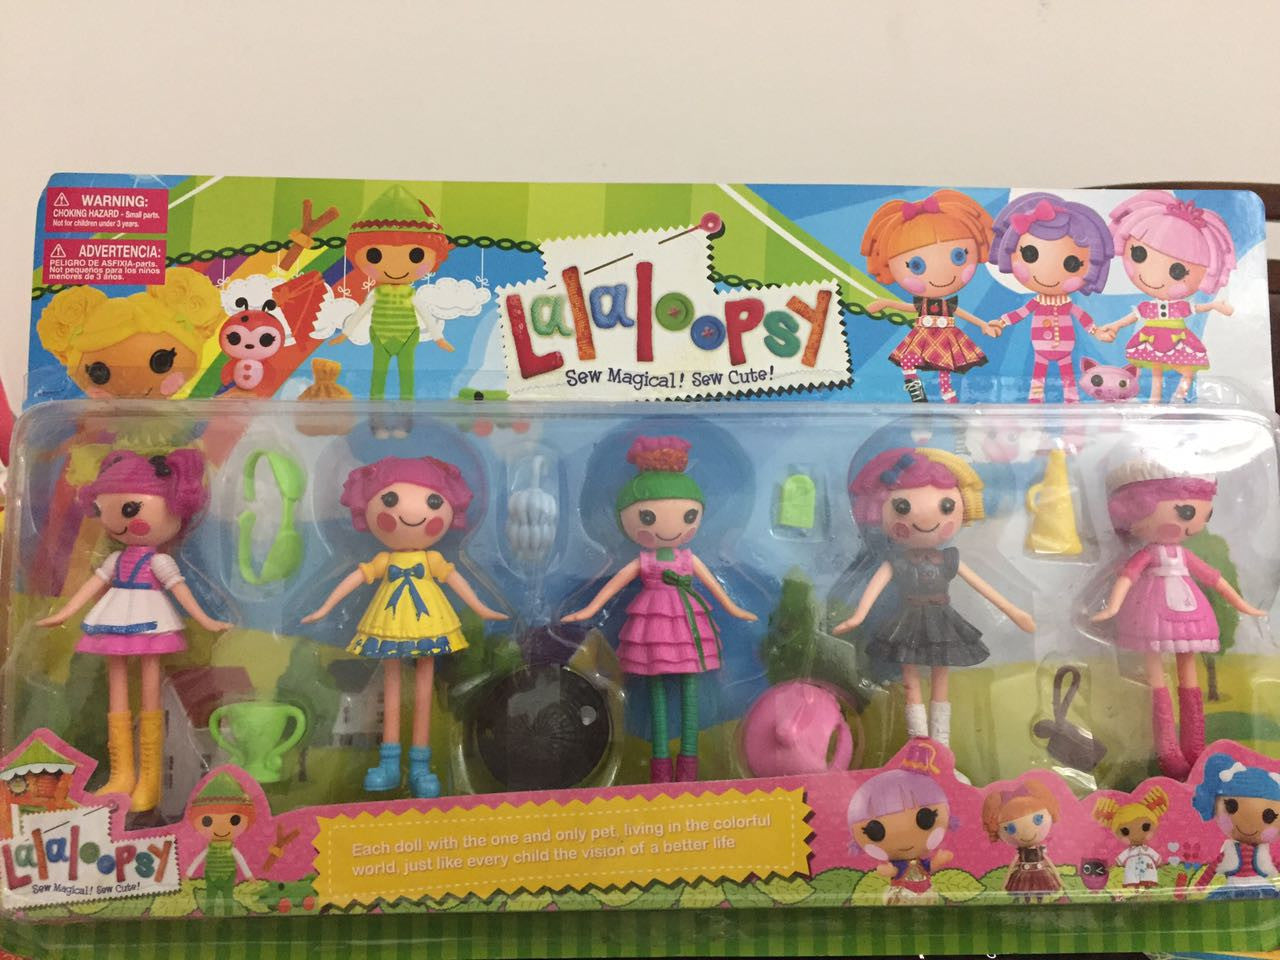 5pcs/set Lalaloopsy Figures Doll with Accessories | SarahSale.Com